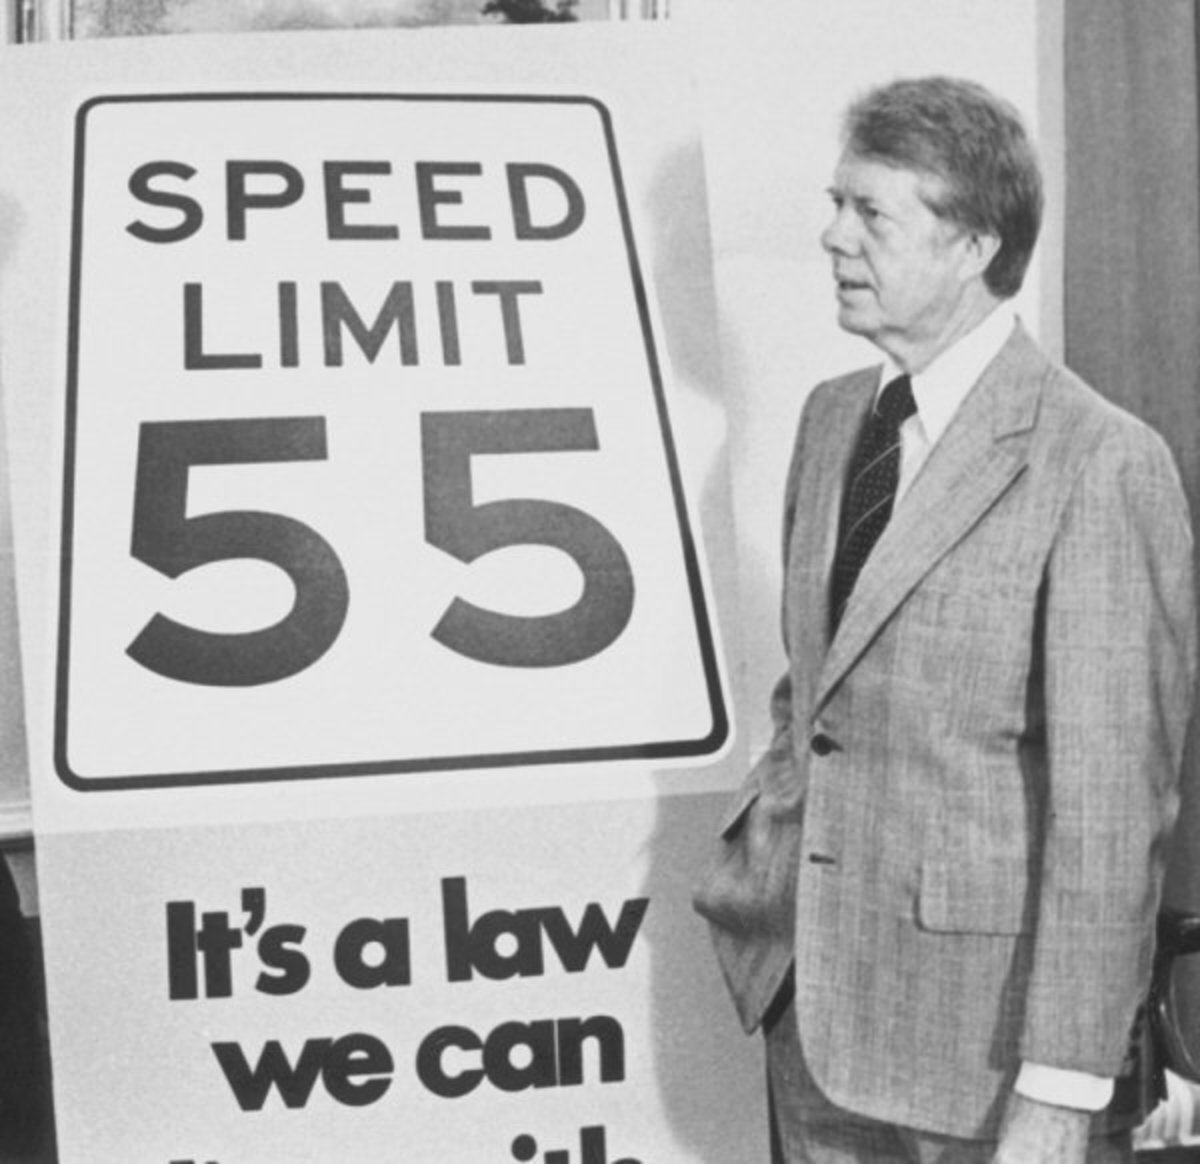 At one time we could not go faster than 55 mph anywhere in the United States.